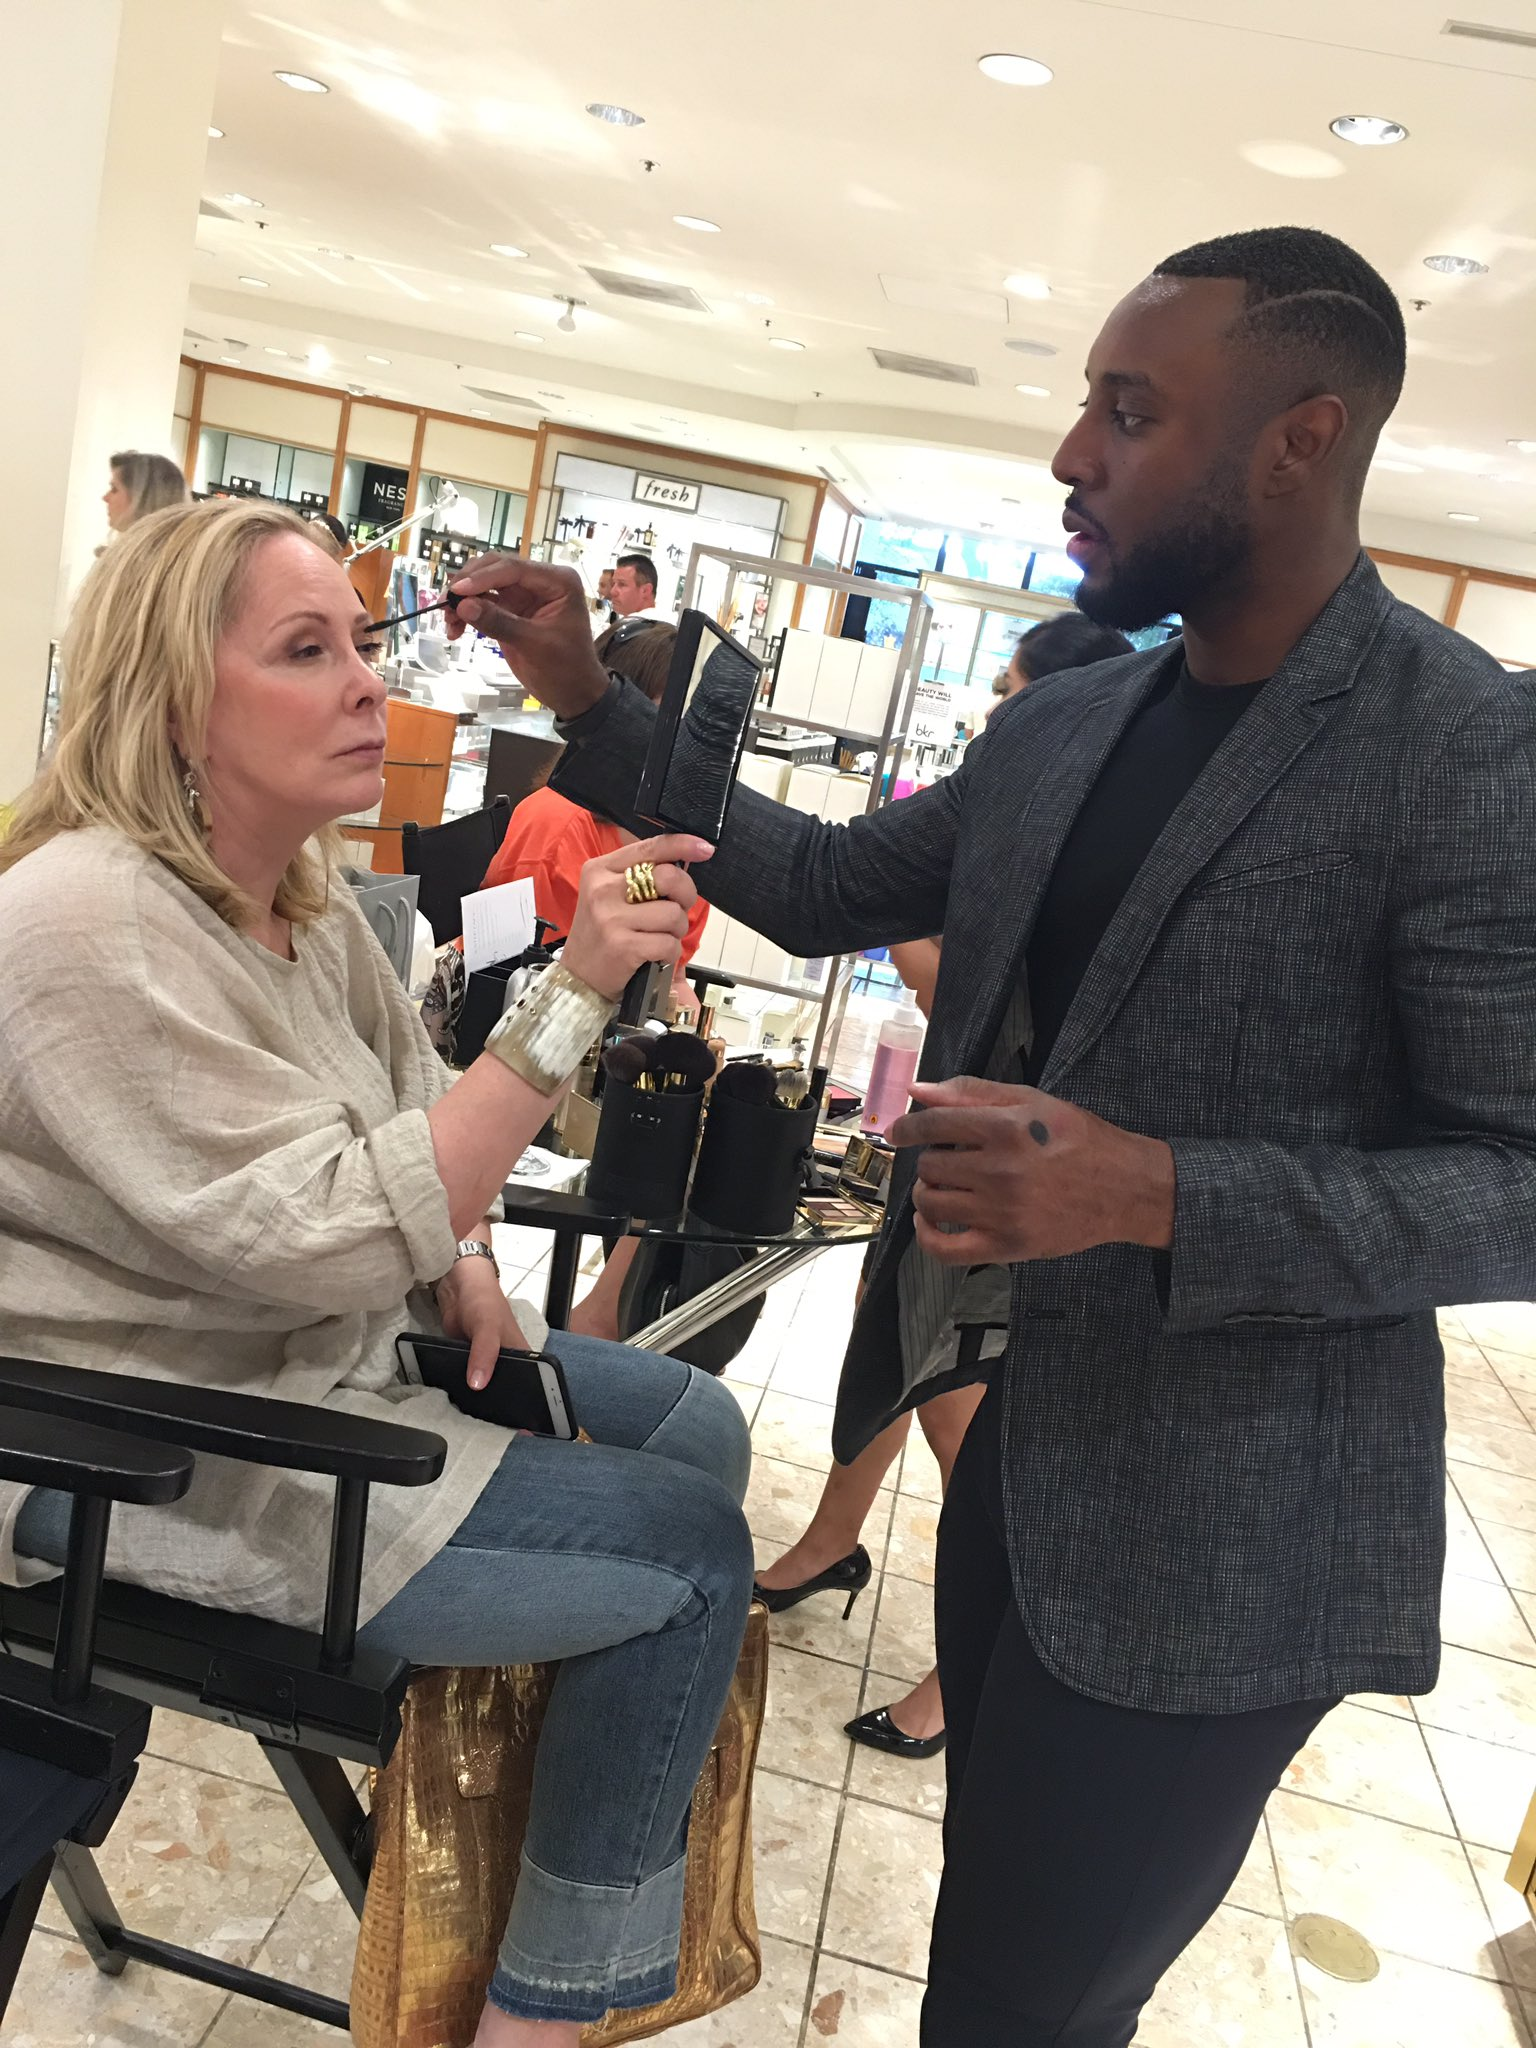 National Makeup Artist Gregory Lawrence of @EsteeLauder will be at NM Northpark until 5pm CT today. Come visit! https://t.co/Tp4rTUWq6z